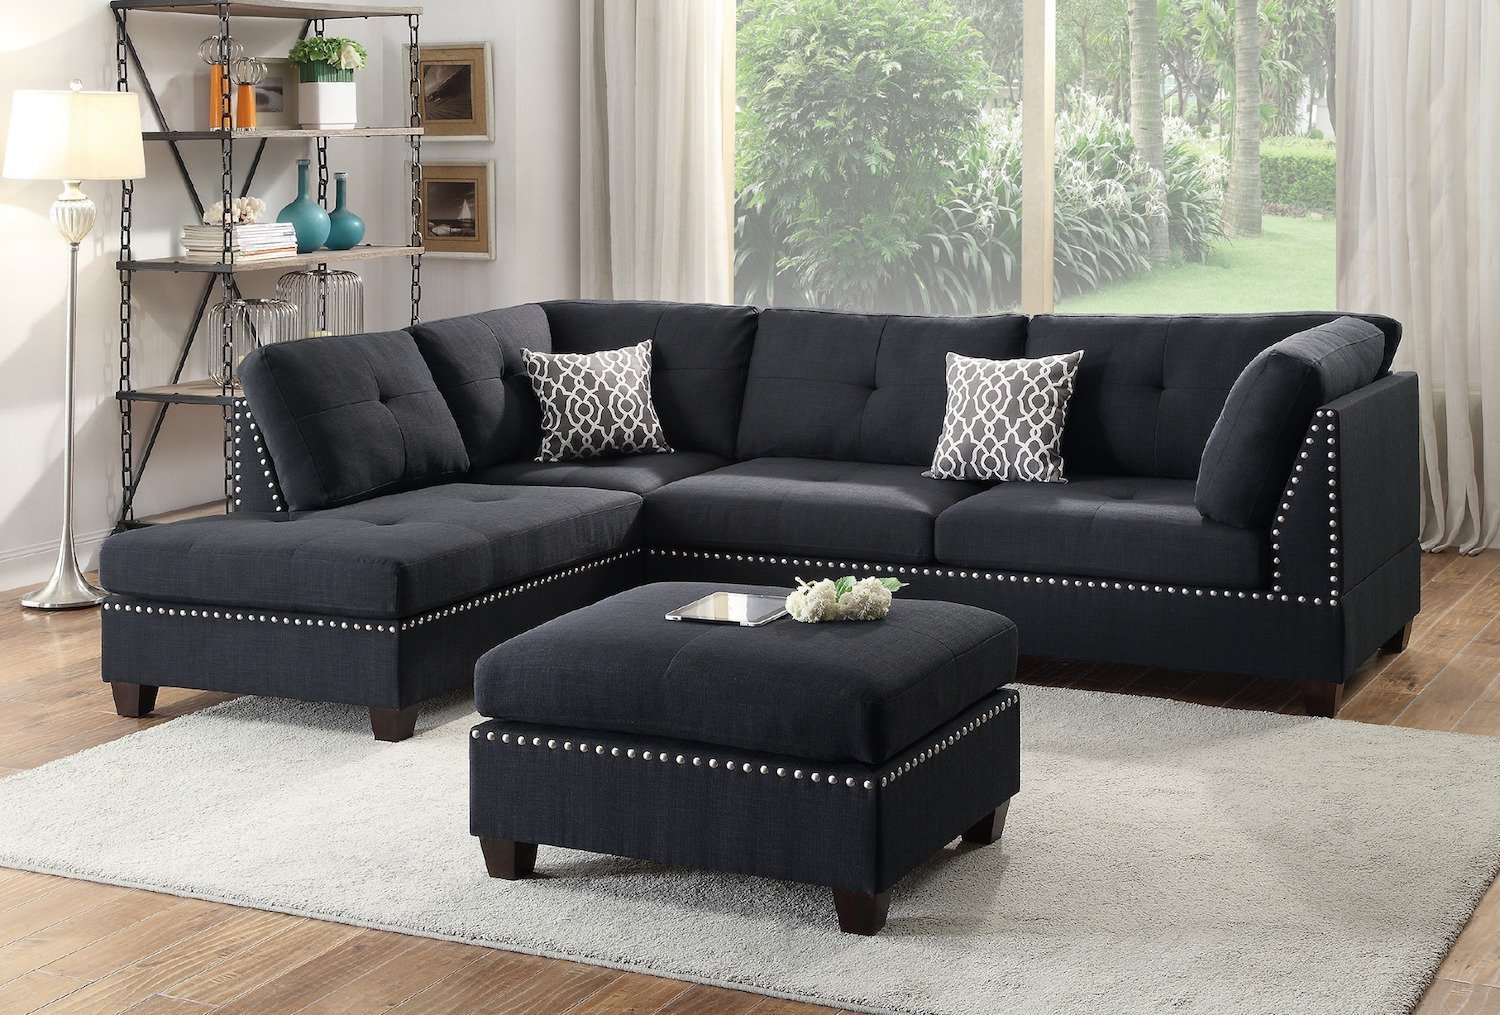 Modern Contemporary Black Polyfiber Fabric Reversible Sectional Sofa Set with Ottoman For Living Room